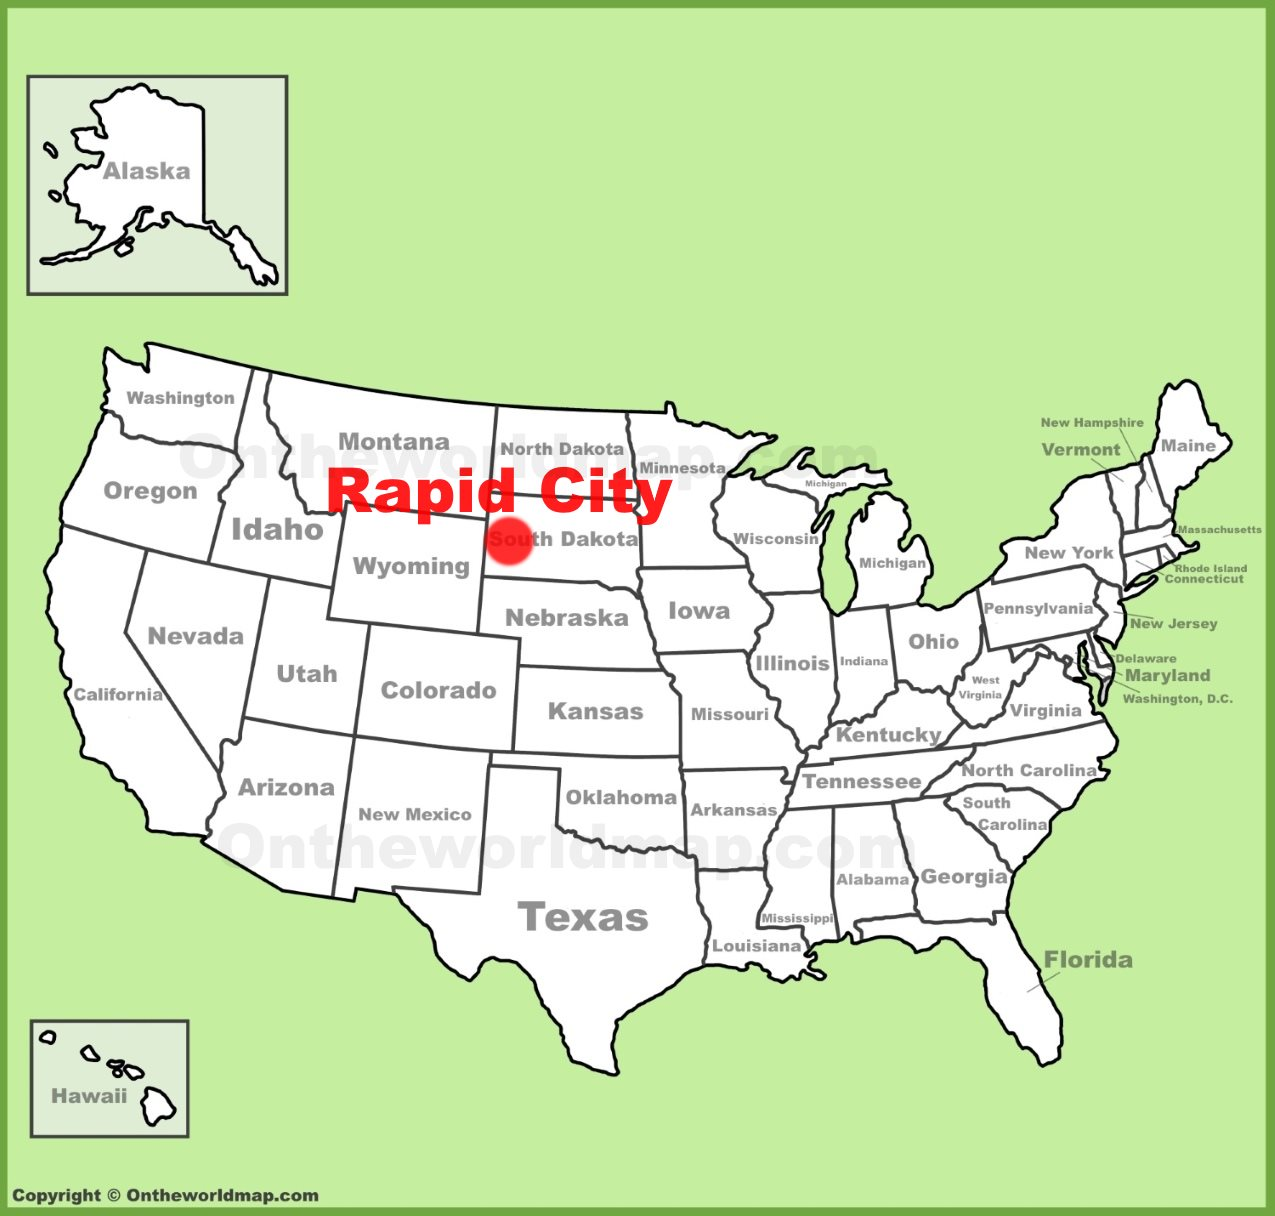 Rapid City Area Map Rapid City location on the U.S. Map